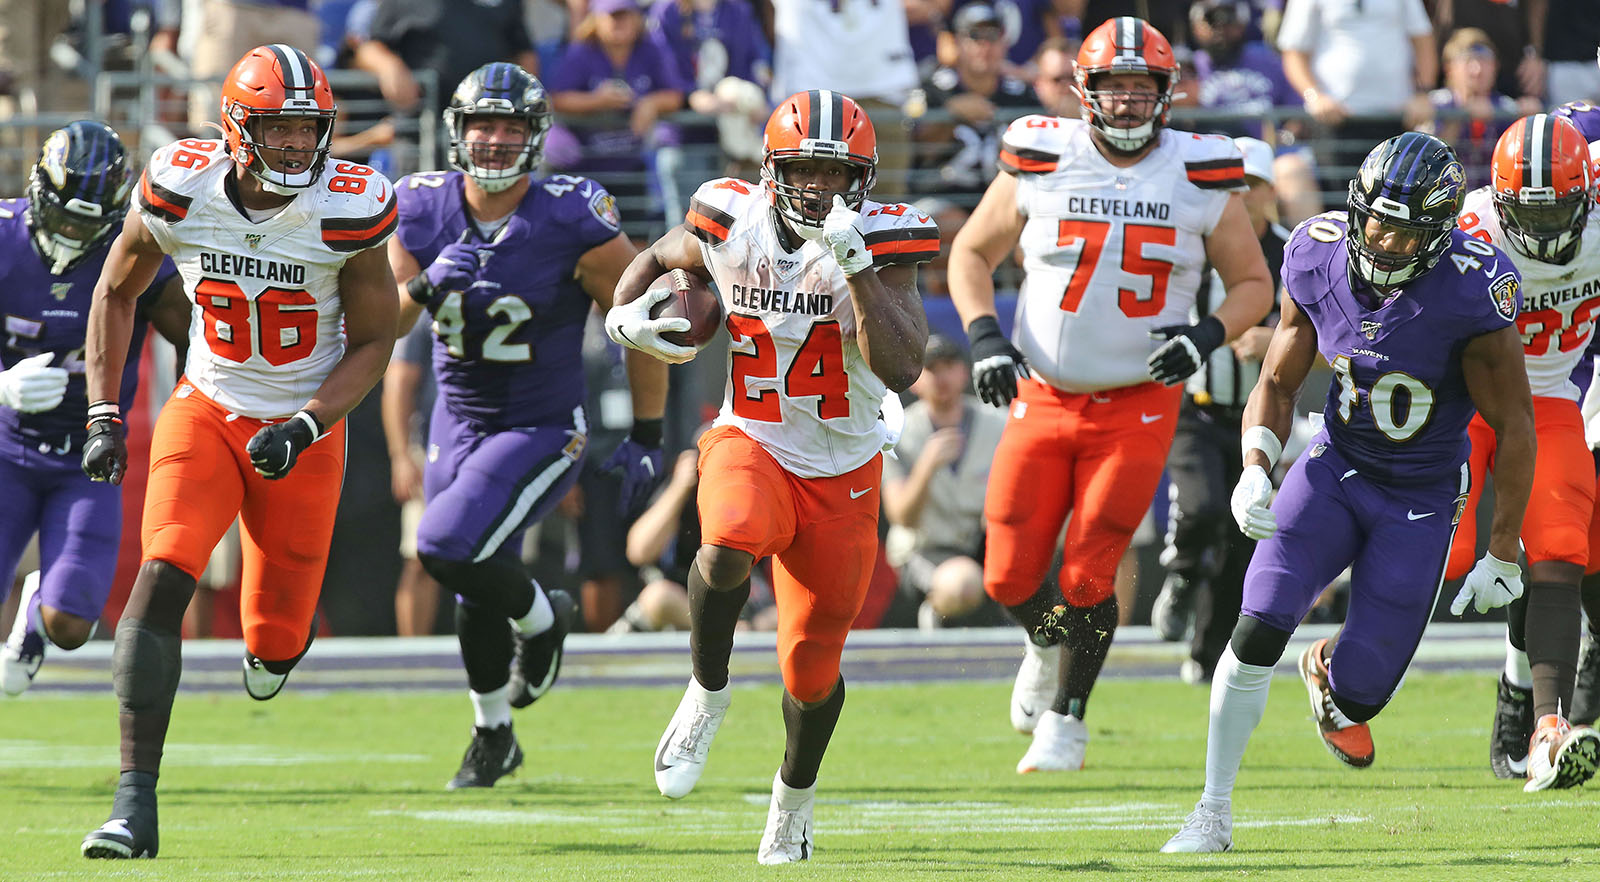 Way to watch Browns vs Ravens live stream reddit NFL game today free from anywhere, check the latest nfl score and updates.